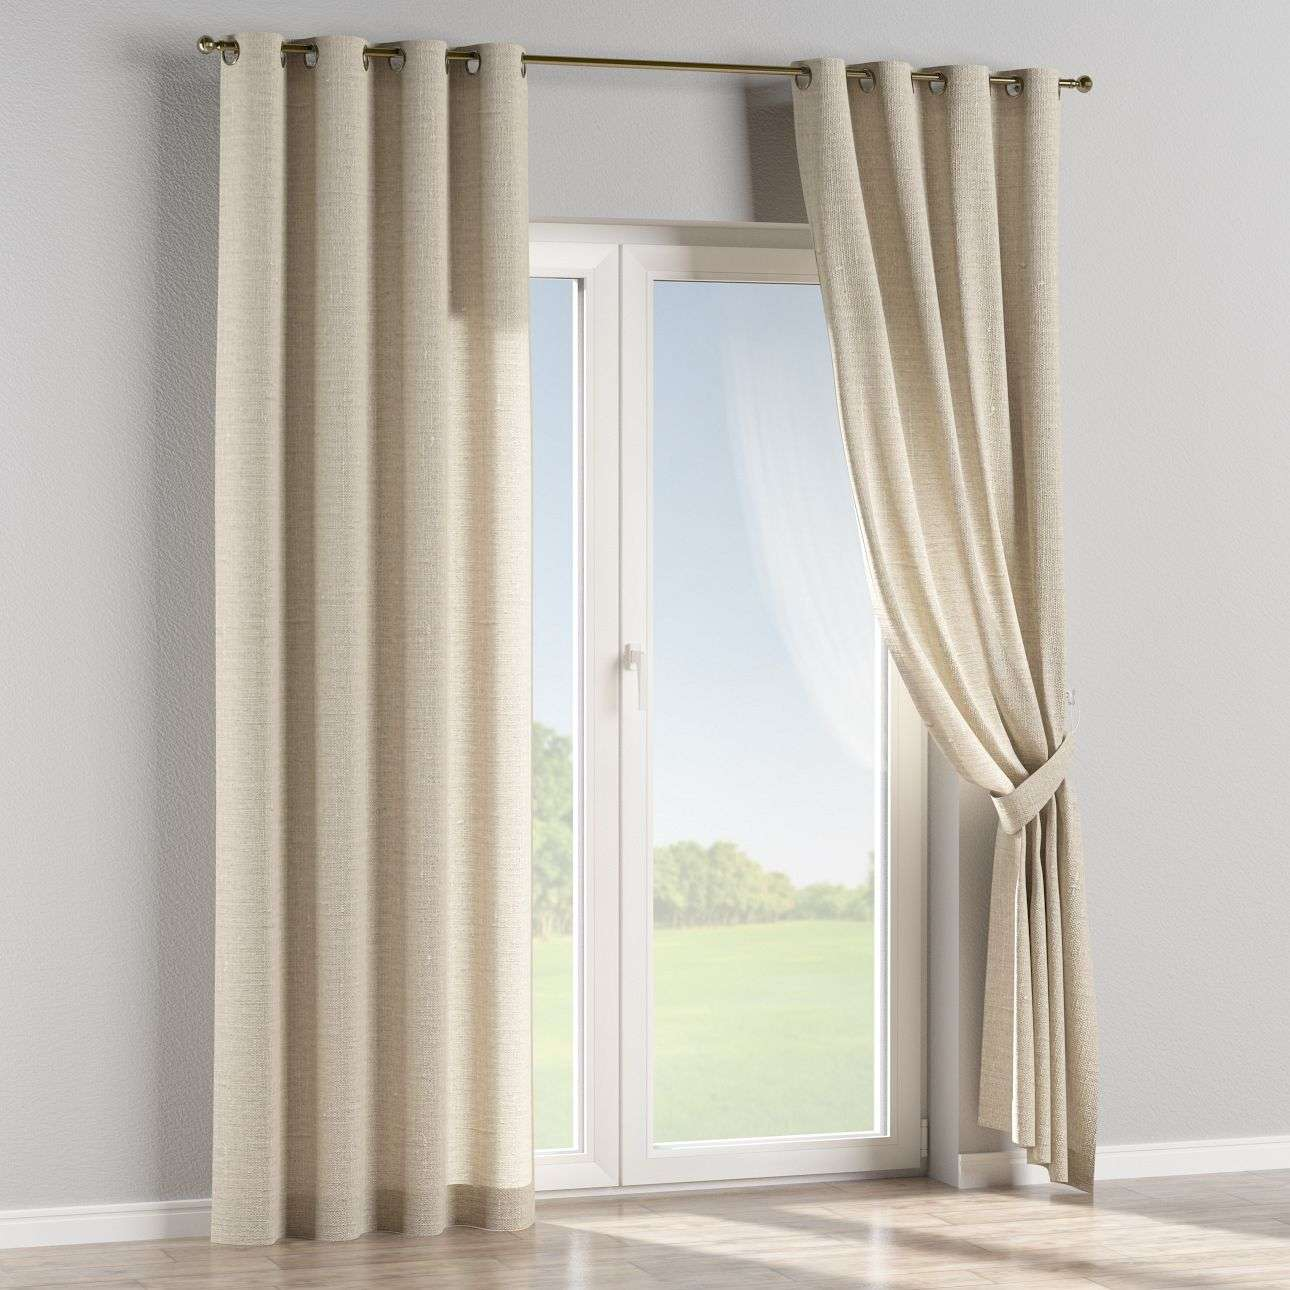 Eyelet curtains 130 x 260 cm (51 x 102 inch) in collection Linen , fabric: 392-05